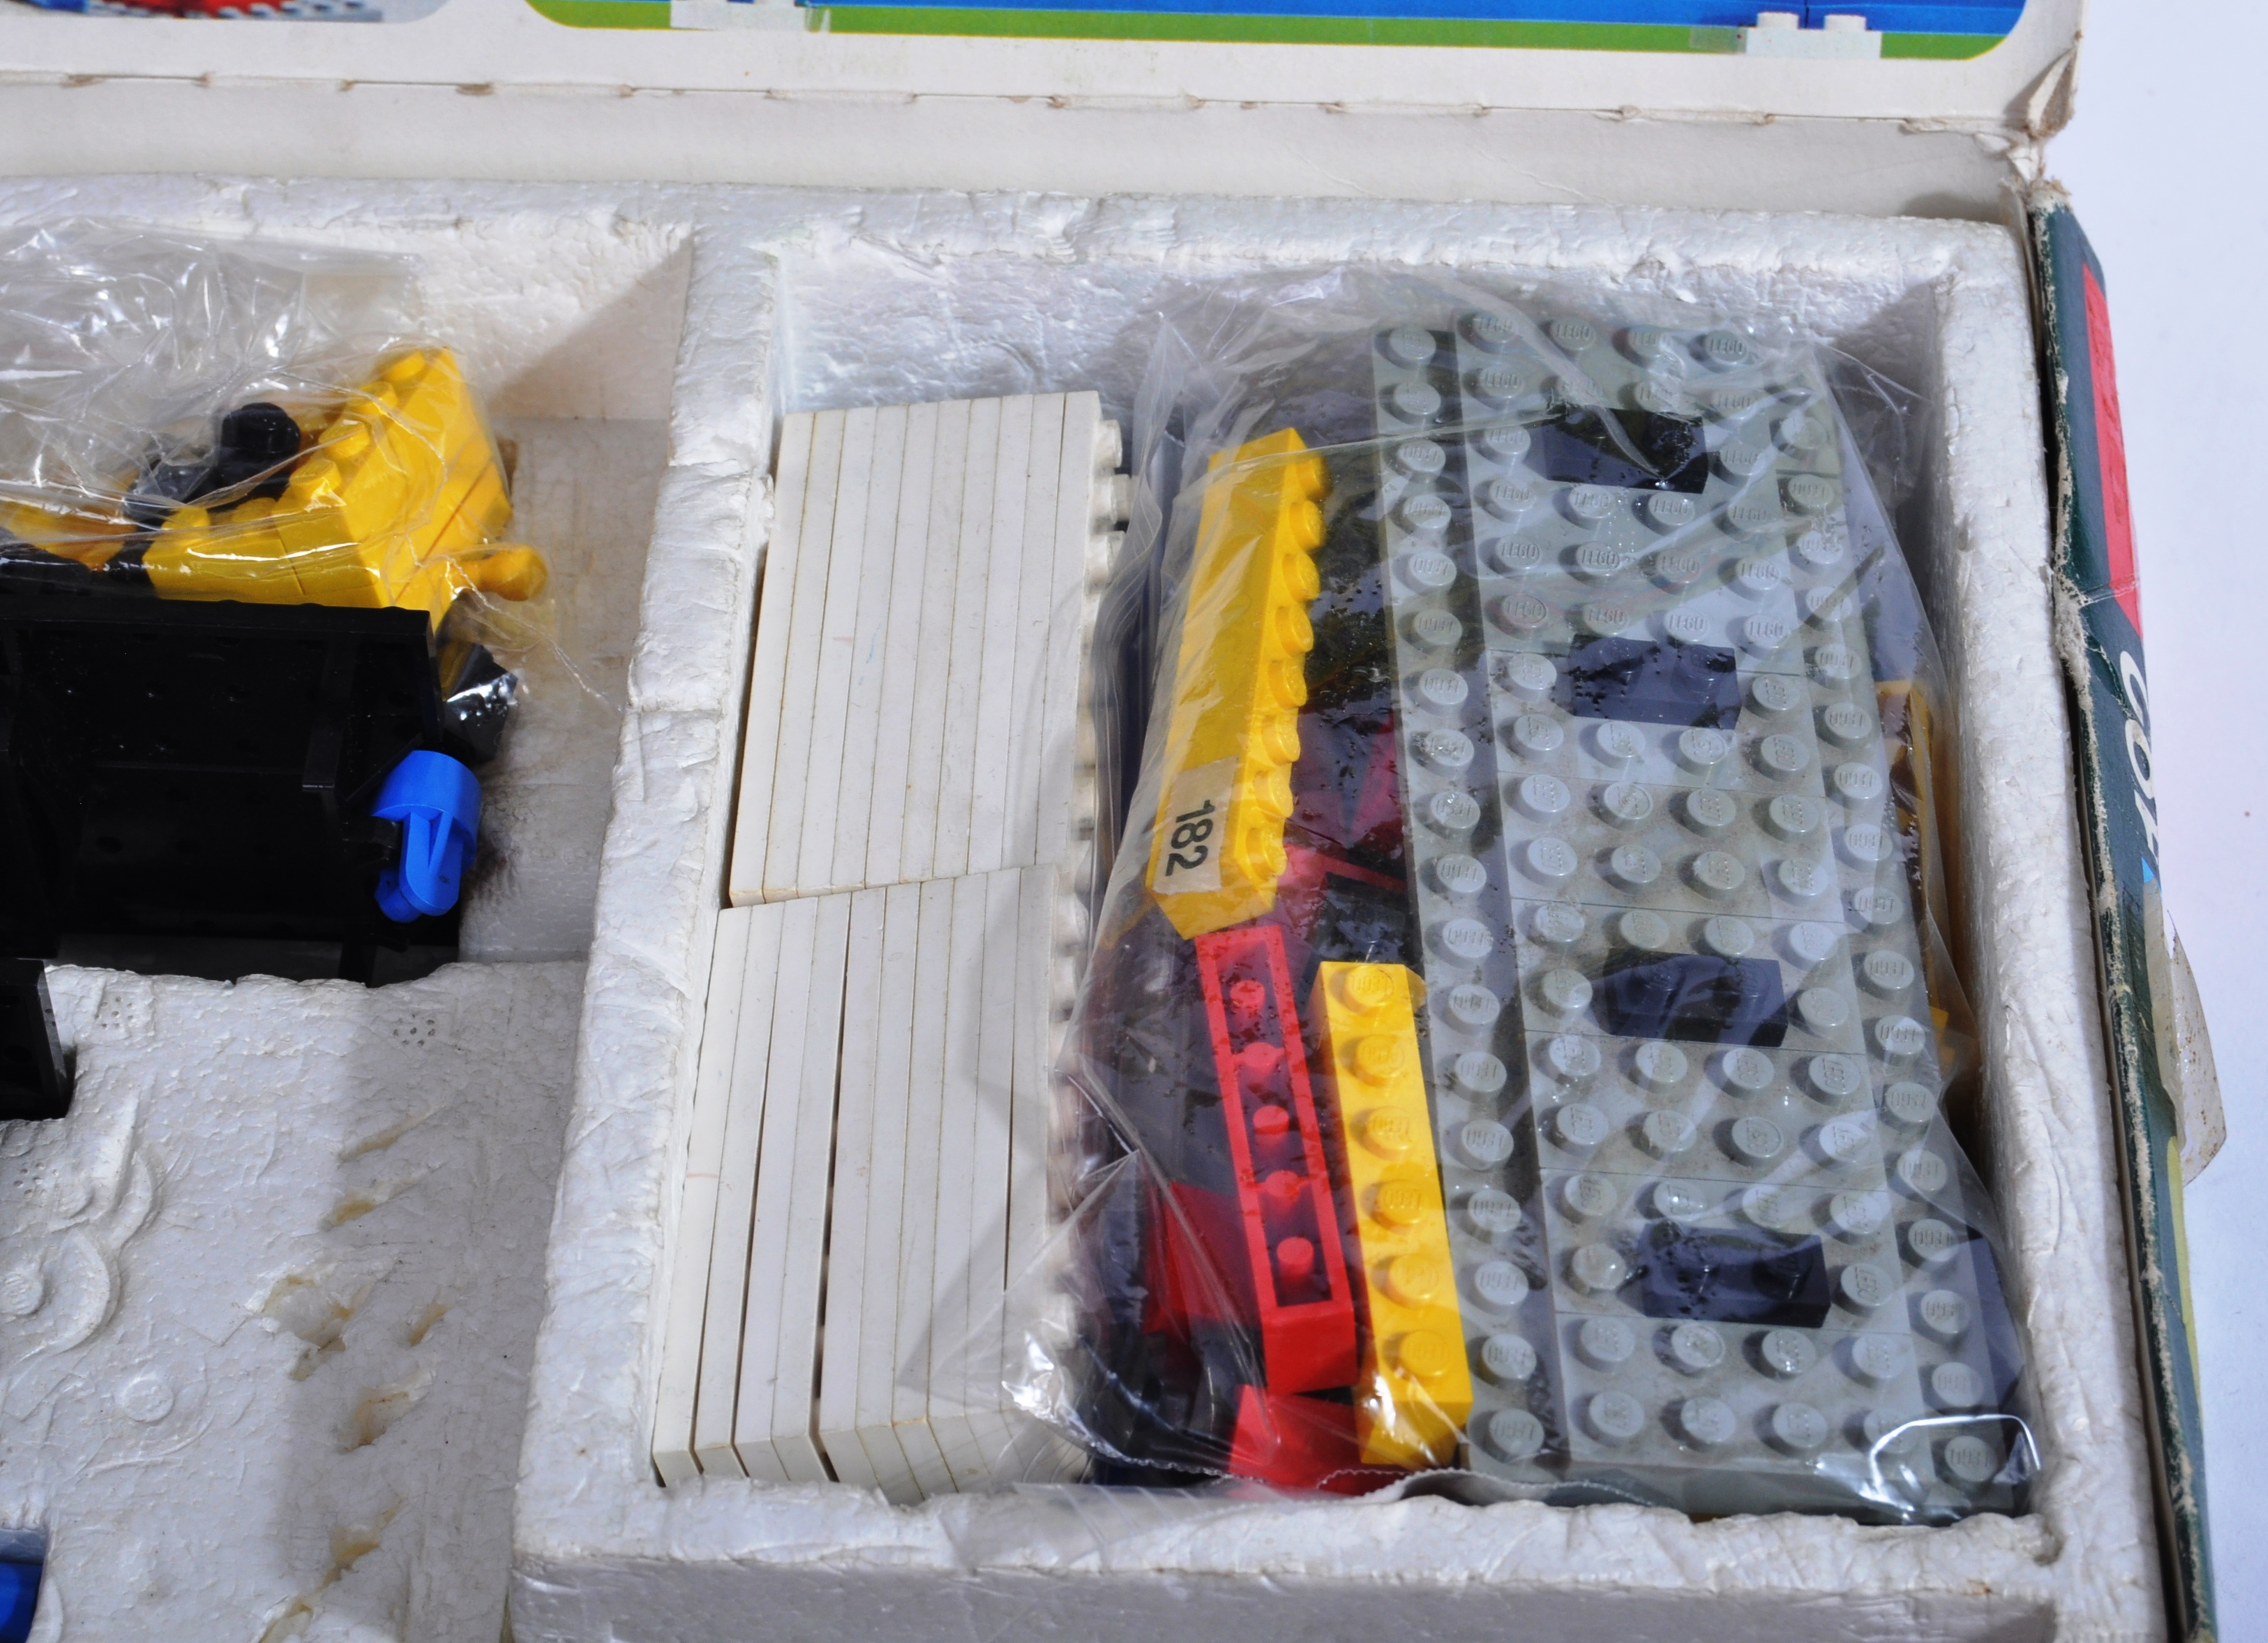 LEGO SET - 182 - TRAIN SET WITH MOTOR AND TRACK - Image 5 of 14